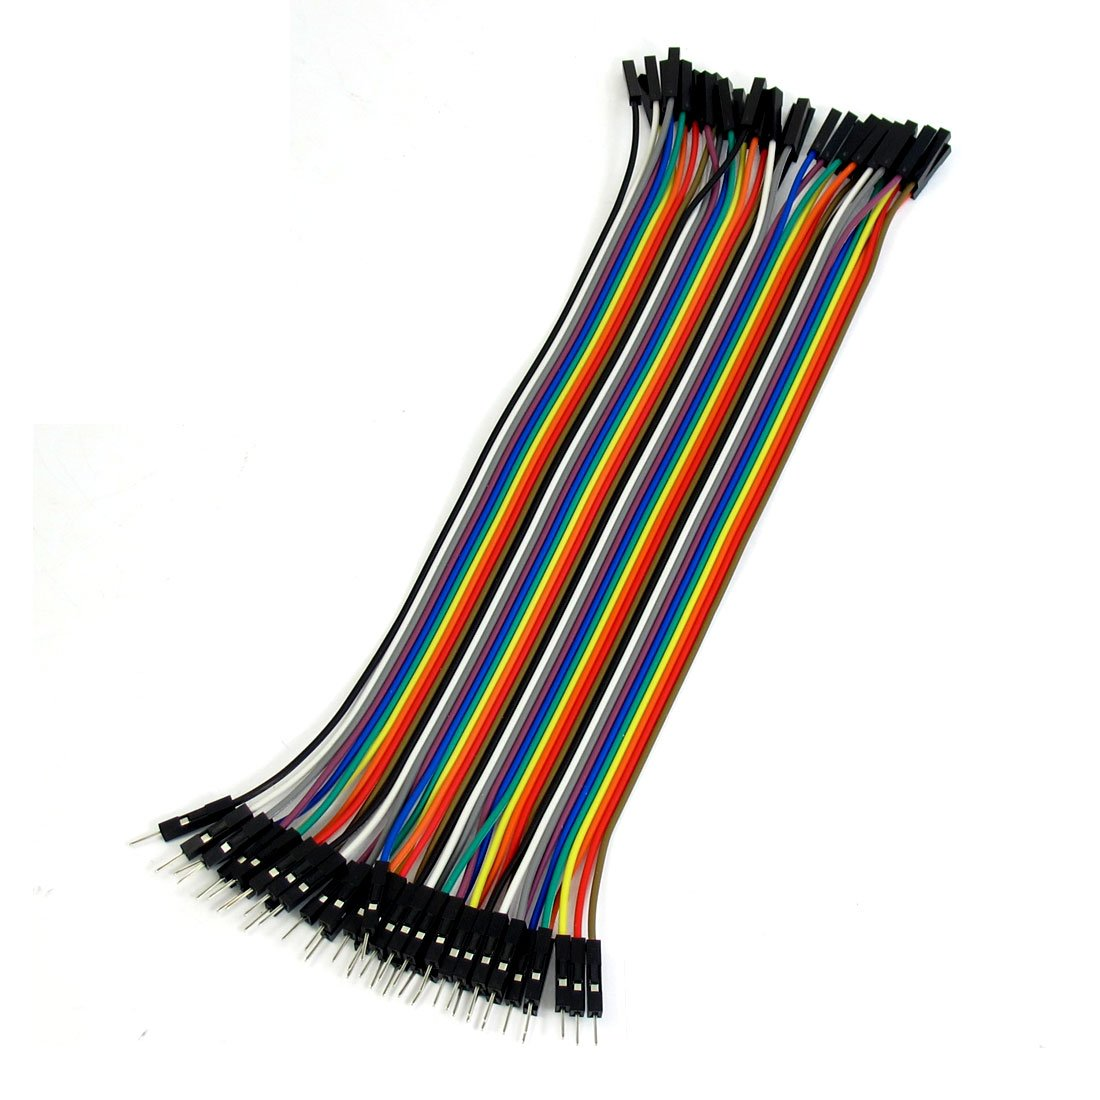 Uxcell a13040500ux0203 1 Pin Male to Female Jumper Cable Wires 20cm Long (Pack of 40)